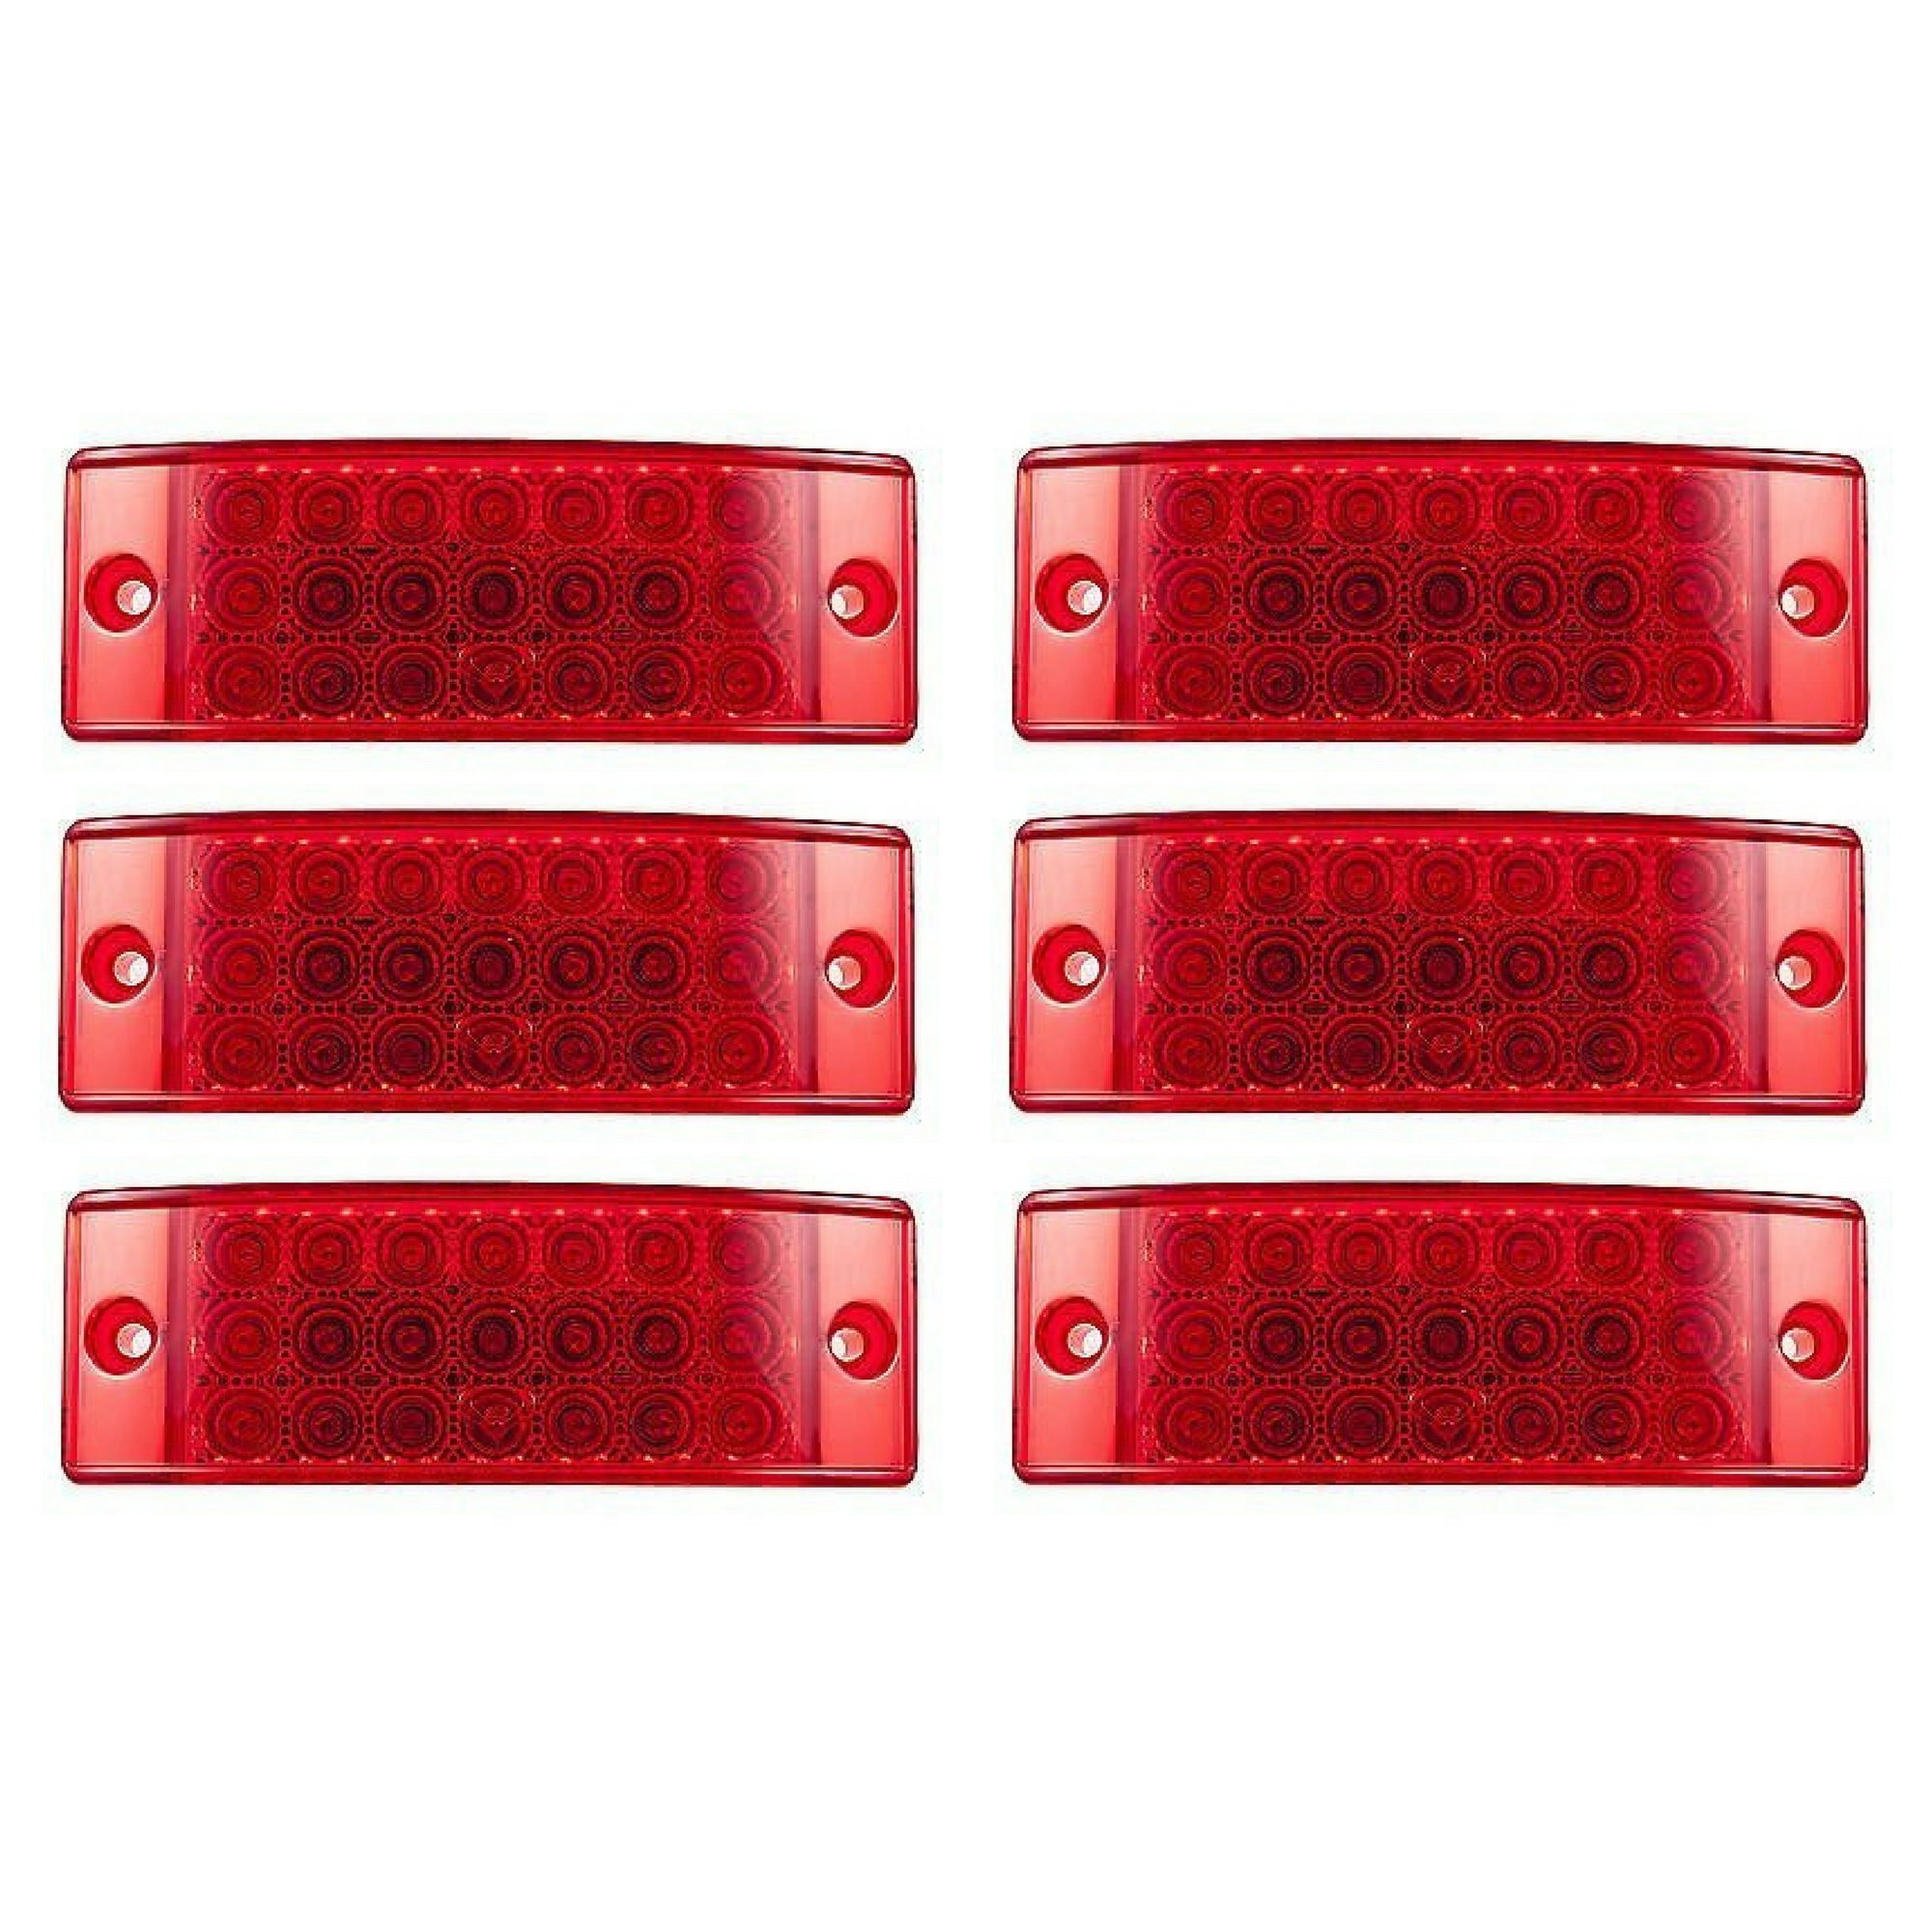 [ALL STAR TRUCK PARTS] Qty 6 - Red 21 LED Side Marker Clearance Light Rectangle 12V Truck Trailer Camper